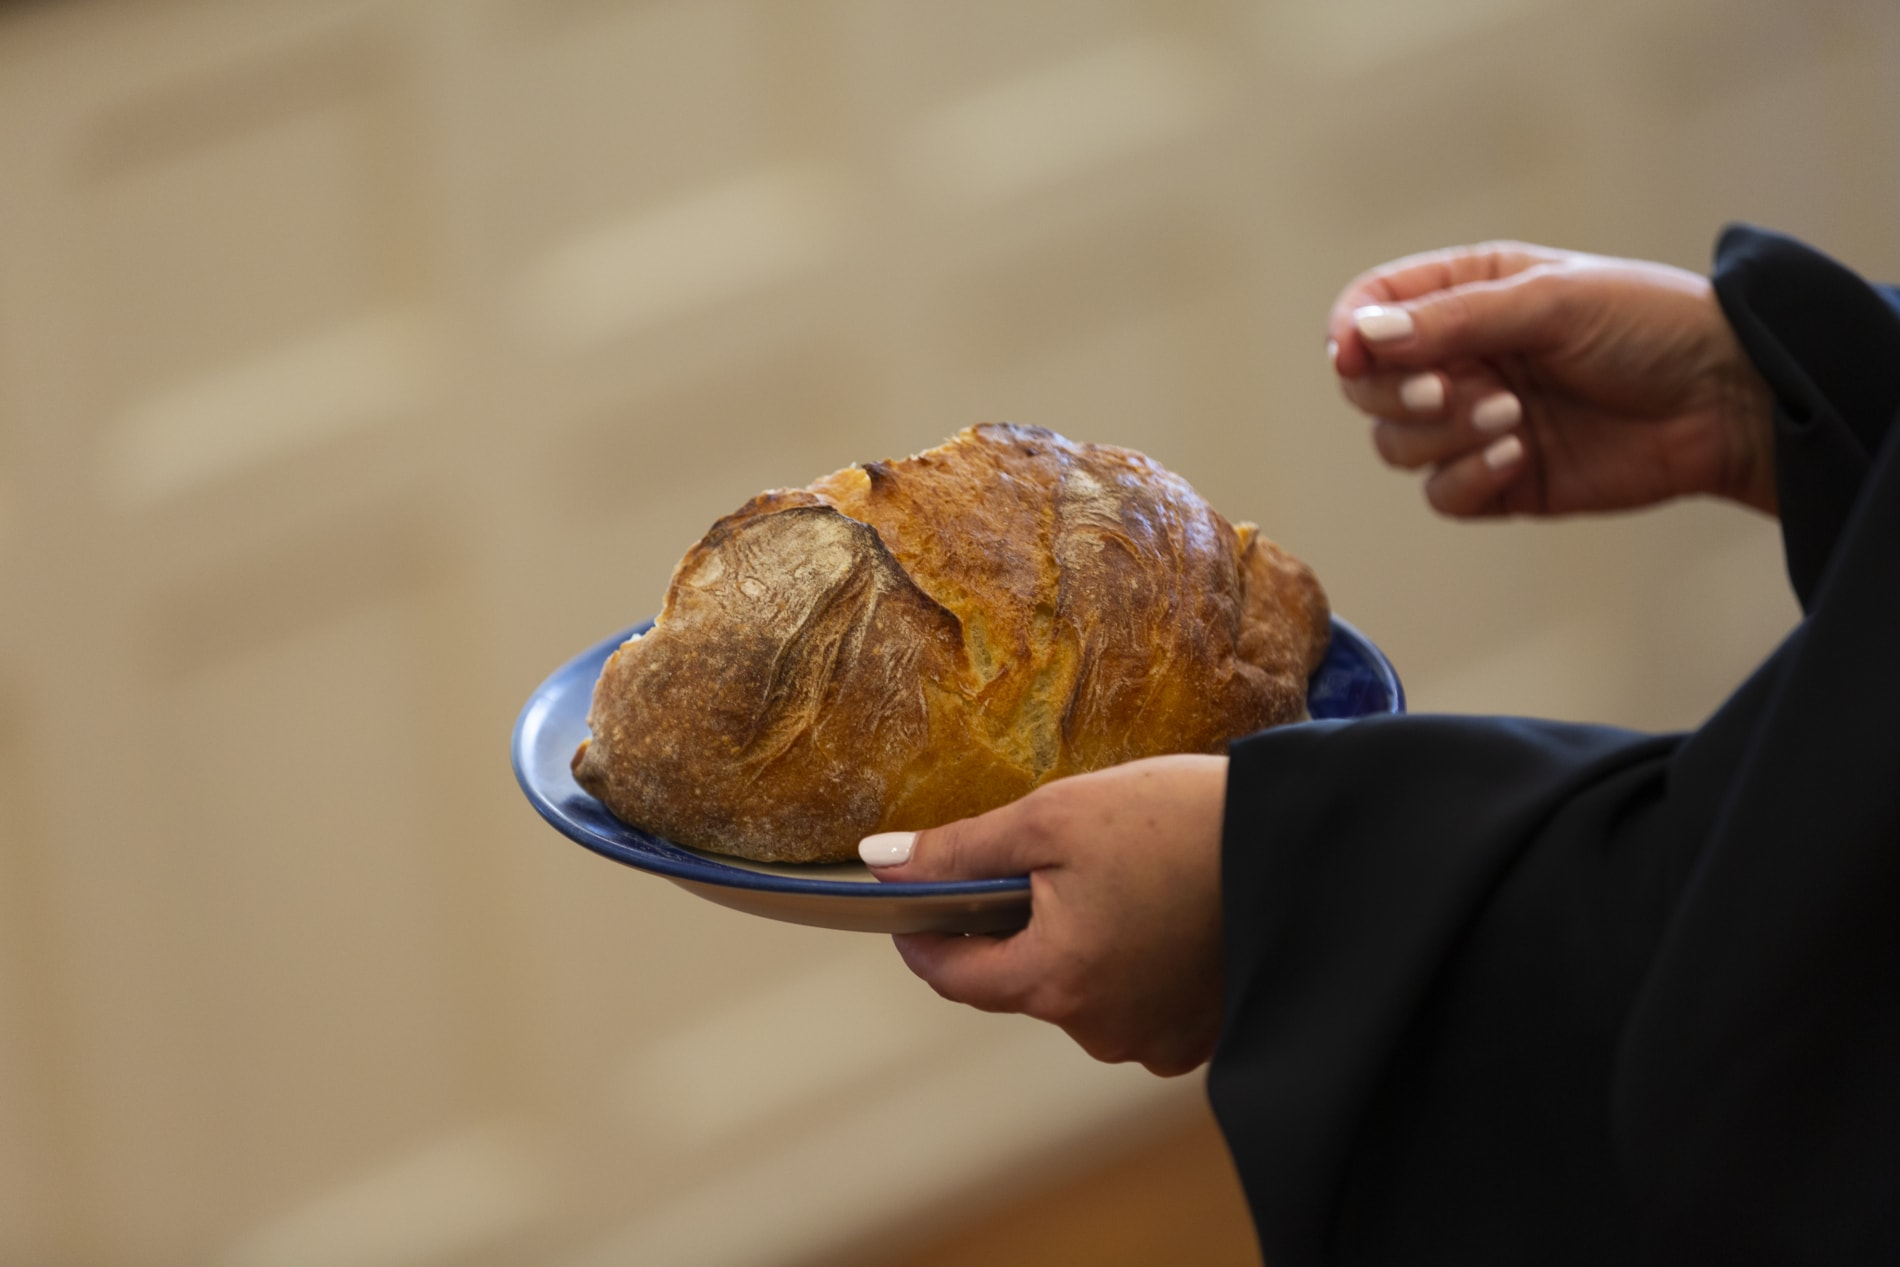 Communion plate holds loaf of bread